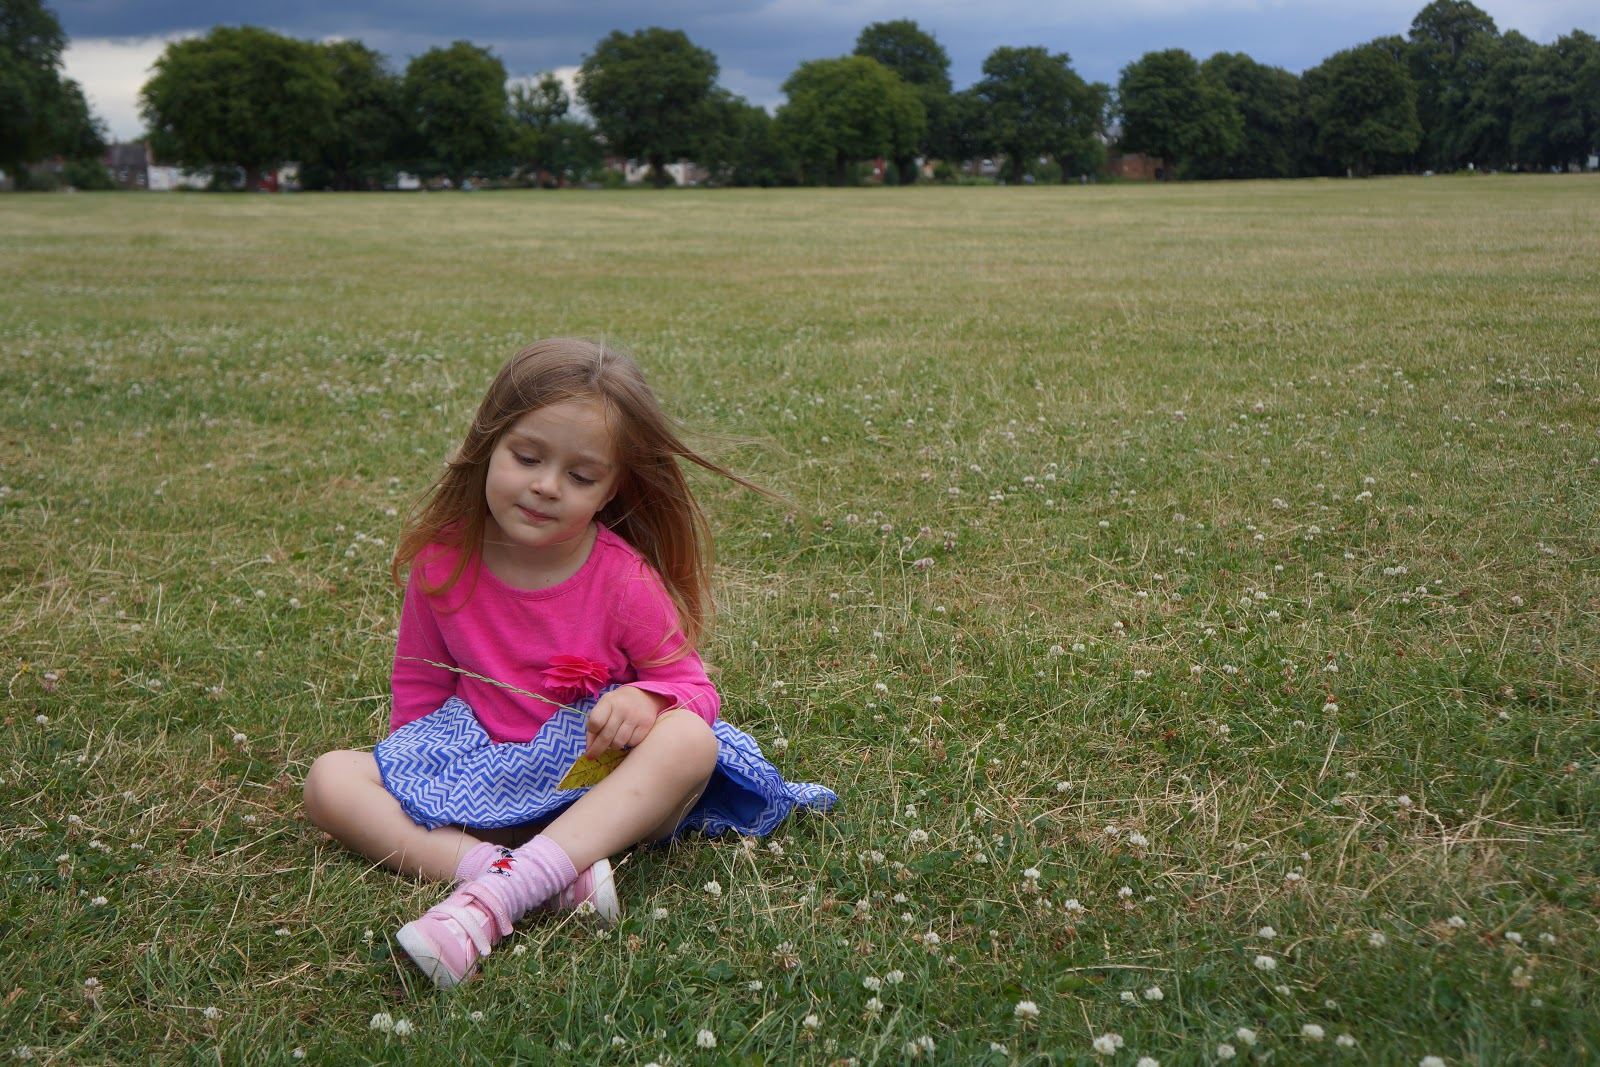 girl sitting on grass in park